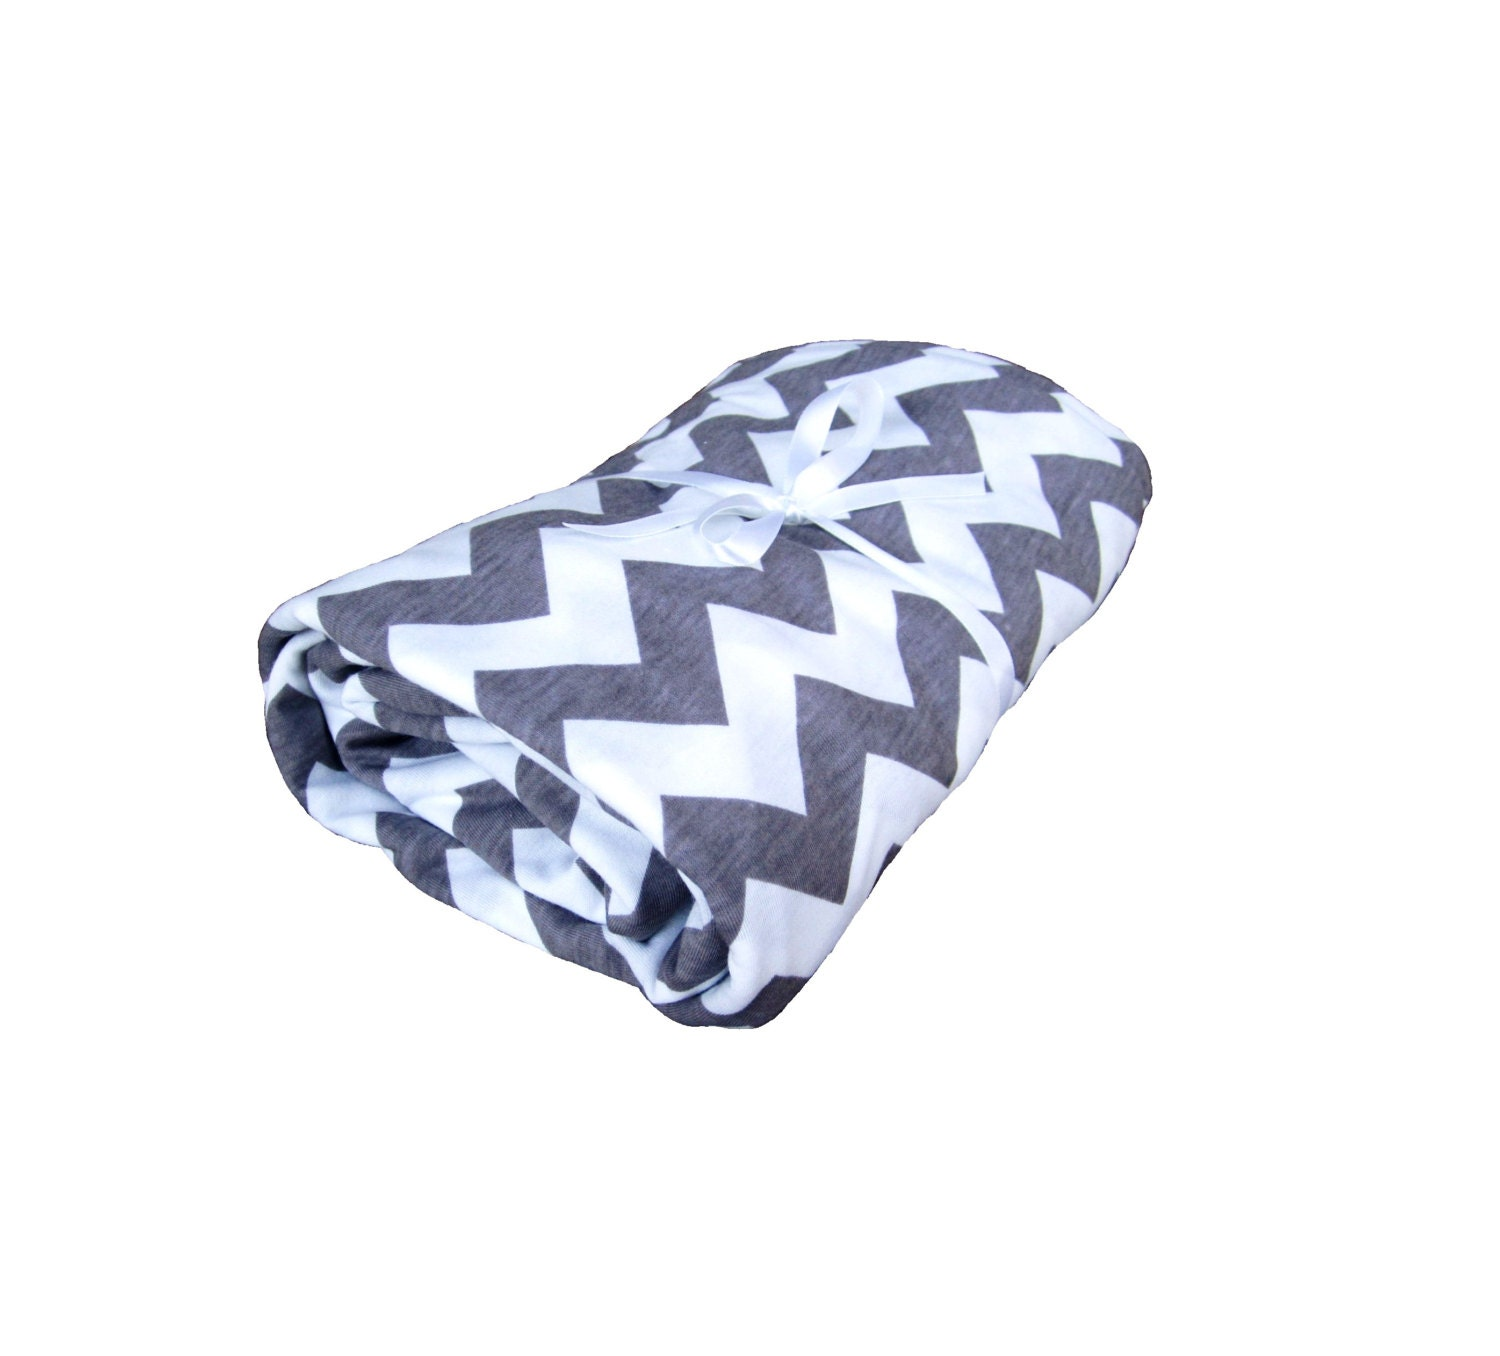 Patterned Jersey Knit Sheets : Chevron Jersey Knit Fitted Sheet Fitted by LittleFootBoutique